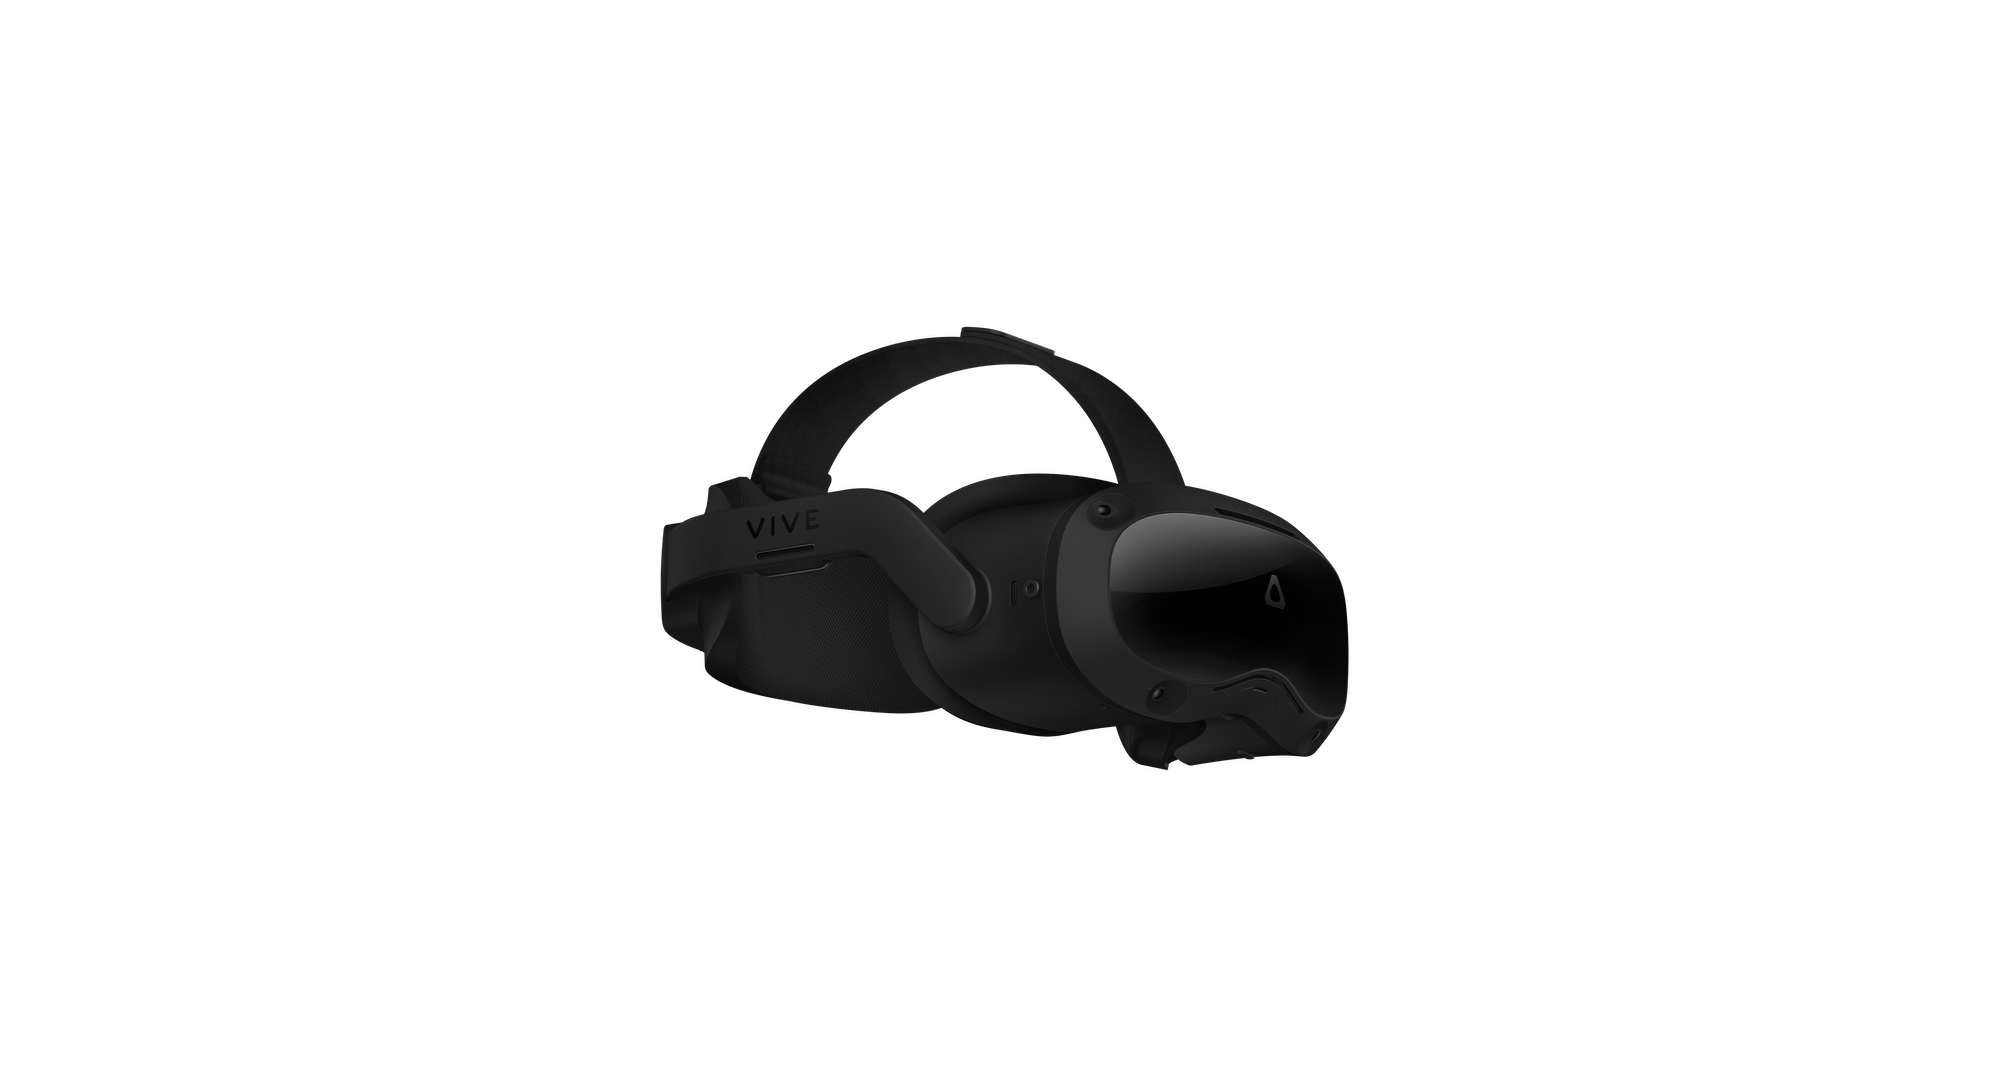 HTC Vive Focus 3 all-in-one wireless standalone VR headset